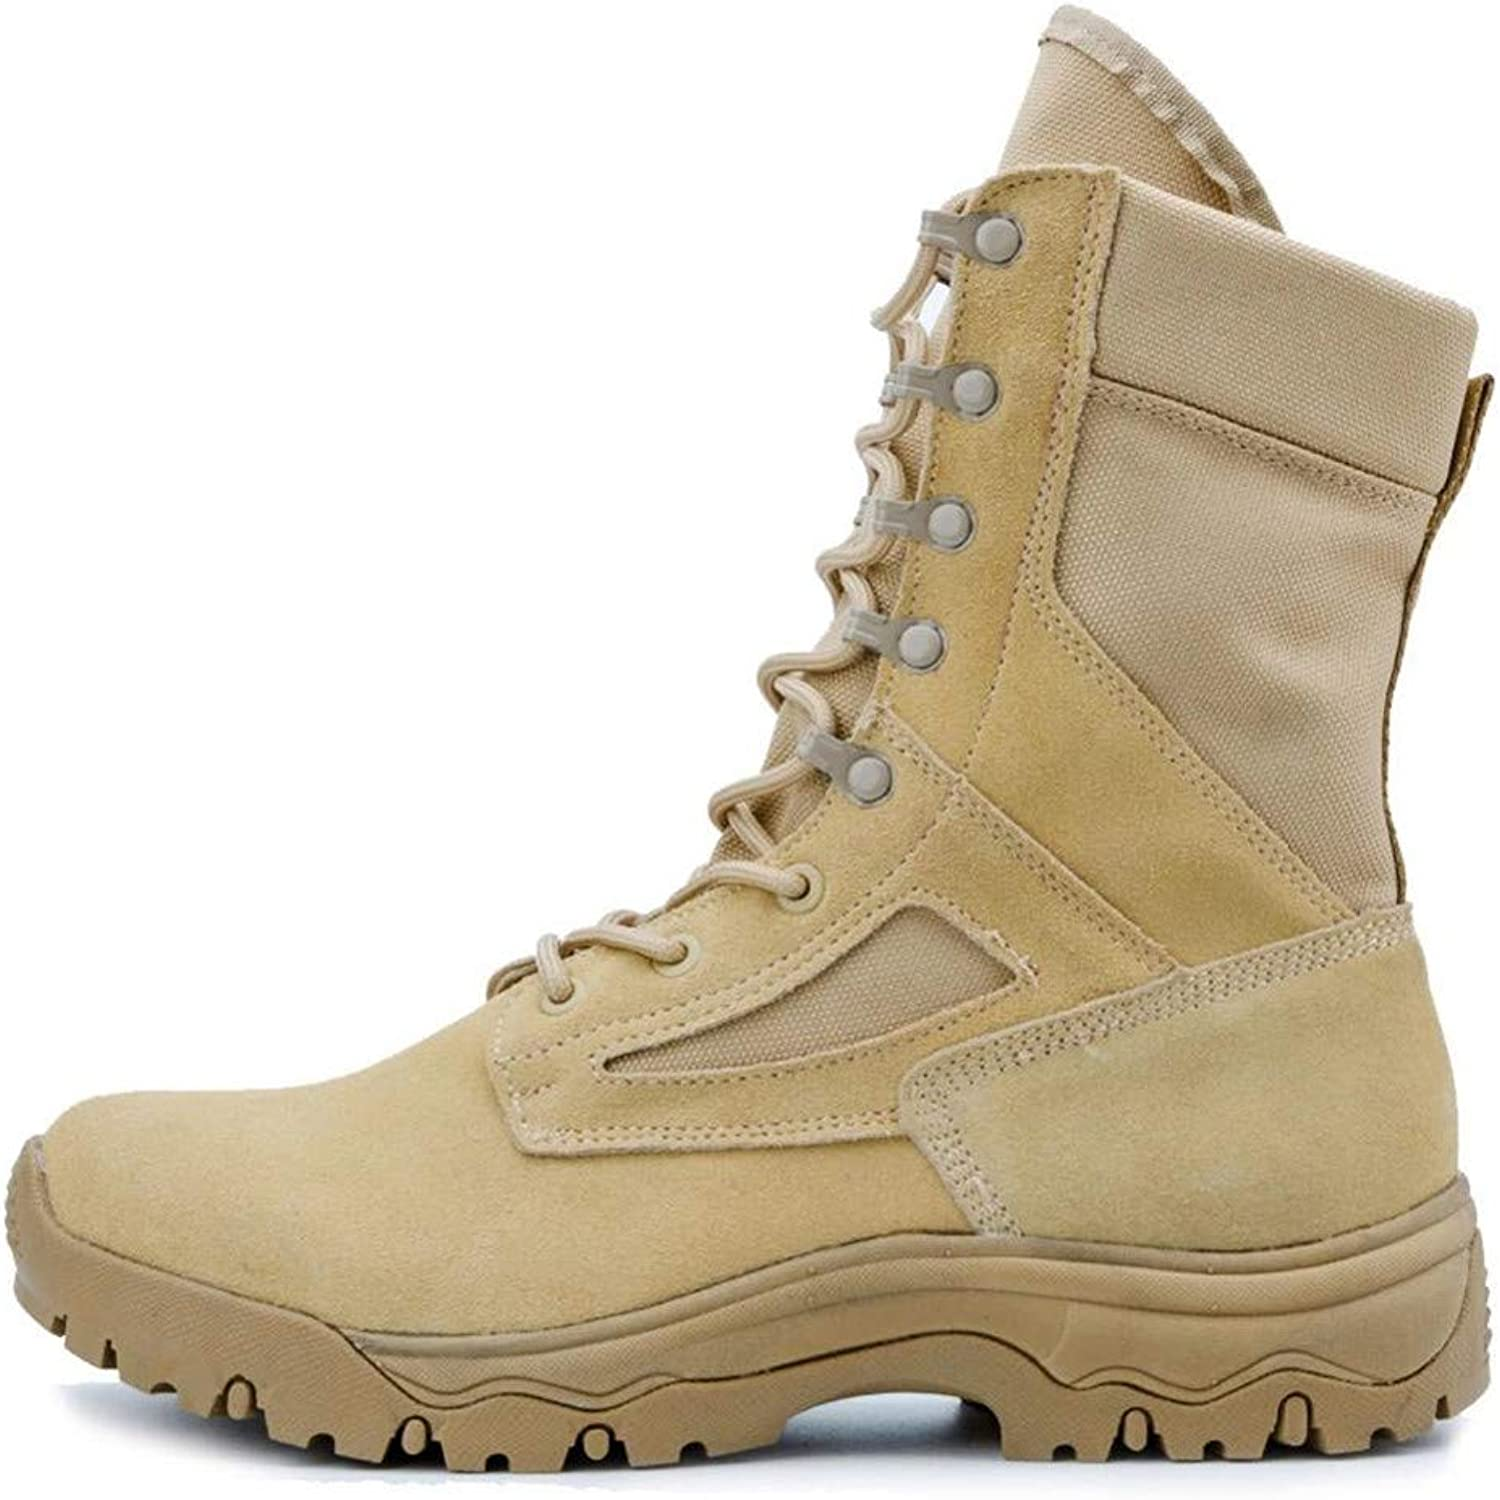 Army Boots Men Military Boots Tactical Combat Boots Waterproof Summer Winter Desert Boots